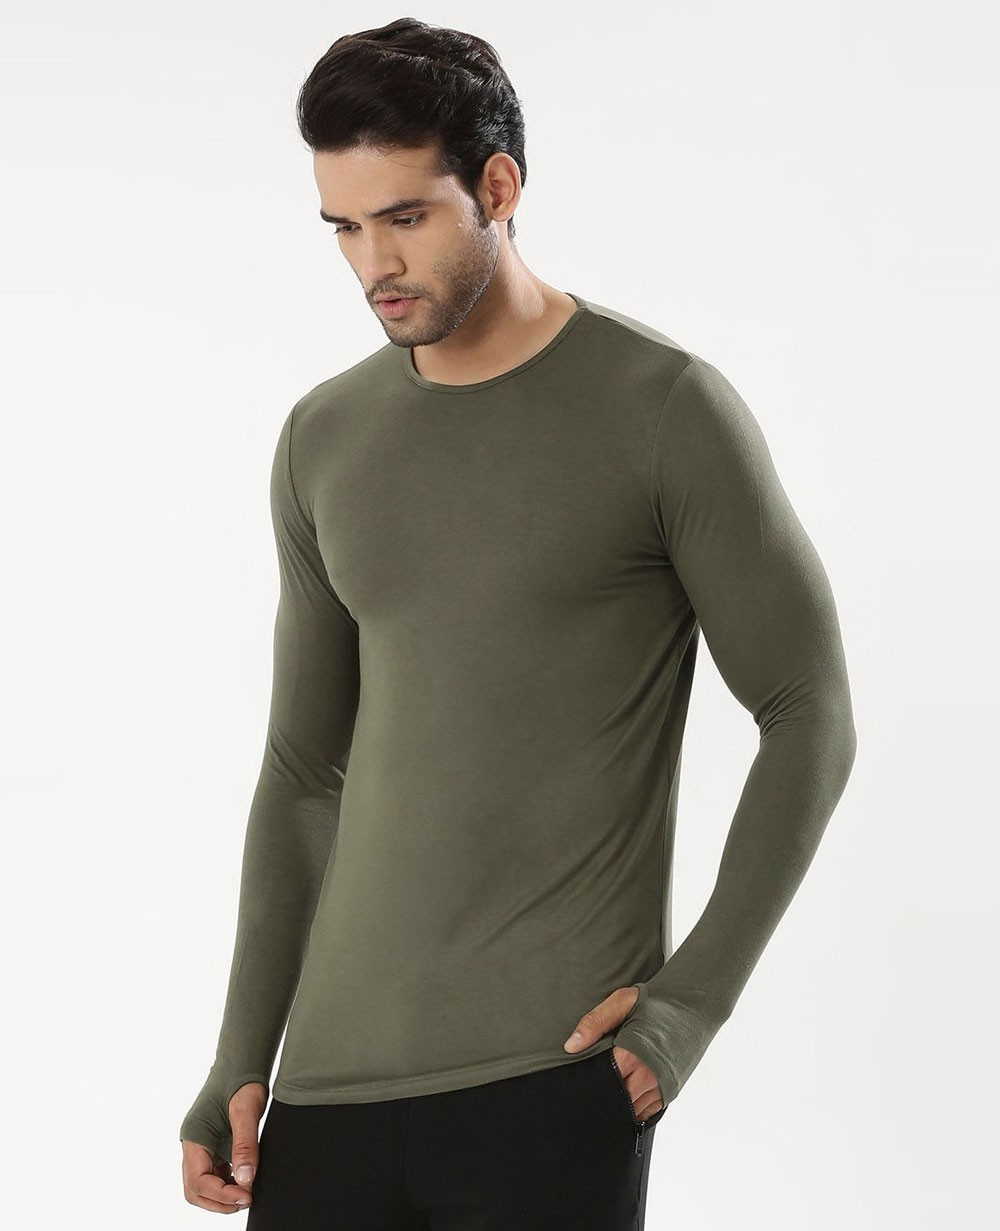 cf2fd91a0 Men Skinny Fit Curved Hem T Shirt With Thumbhole